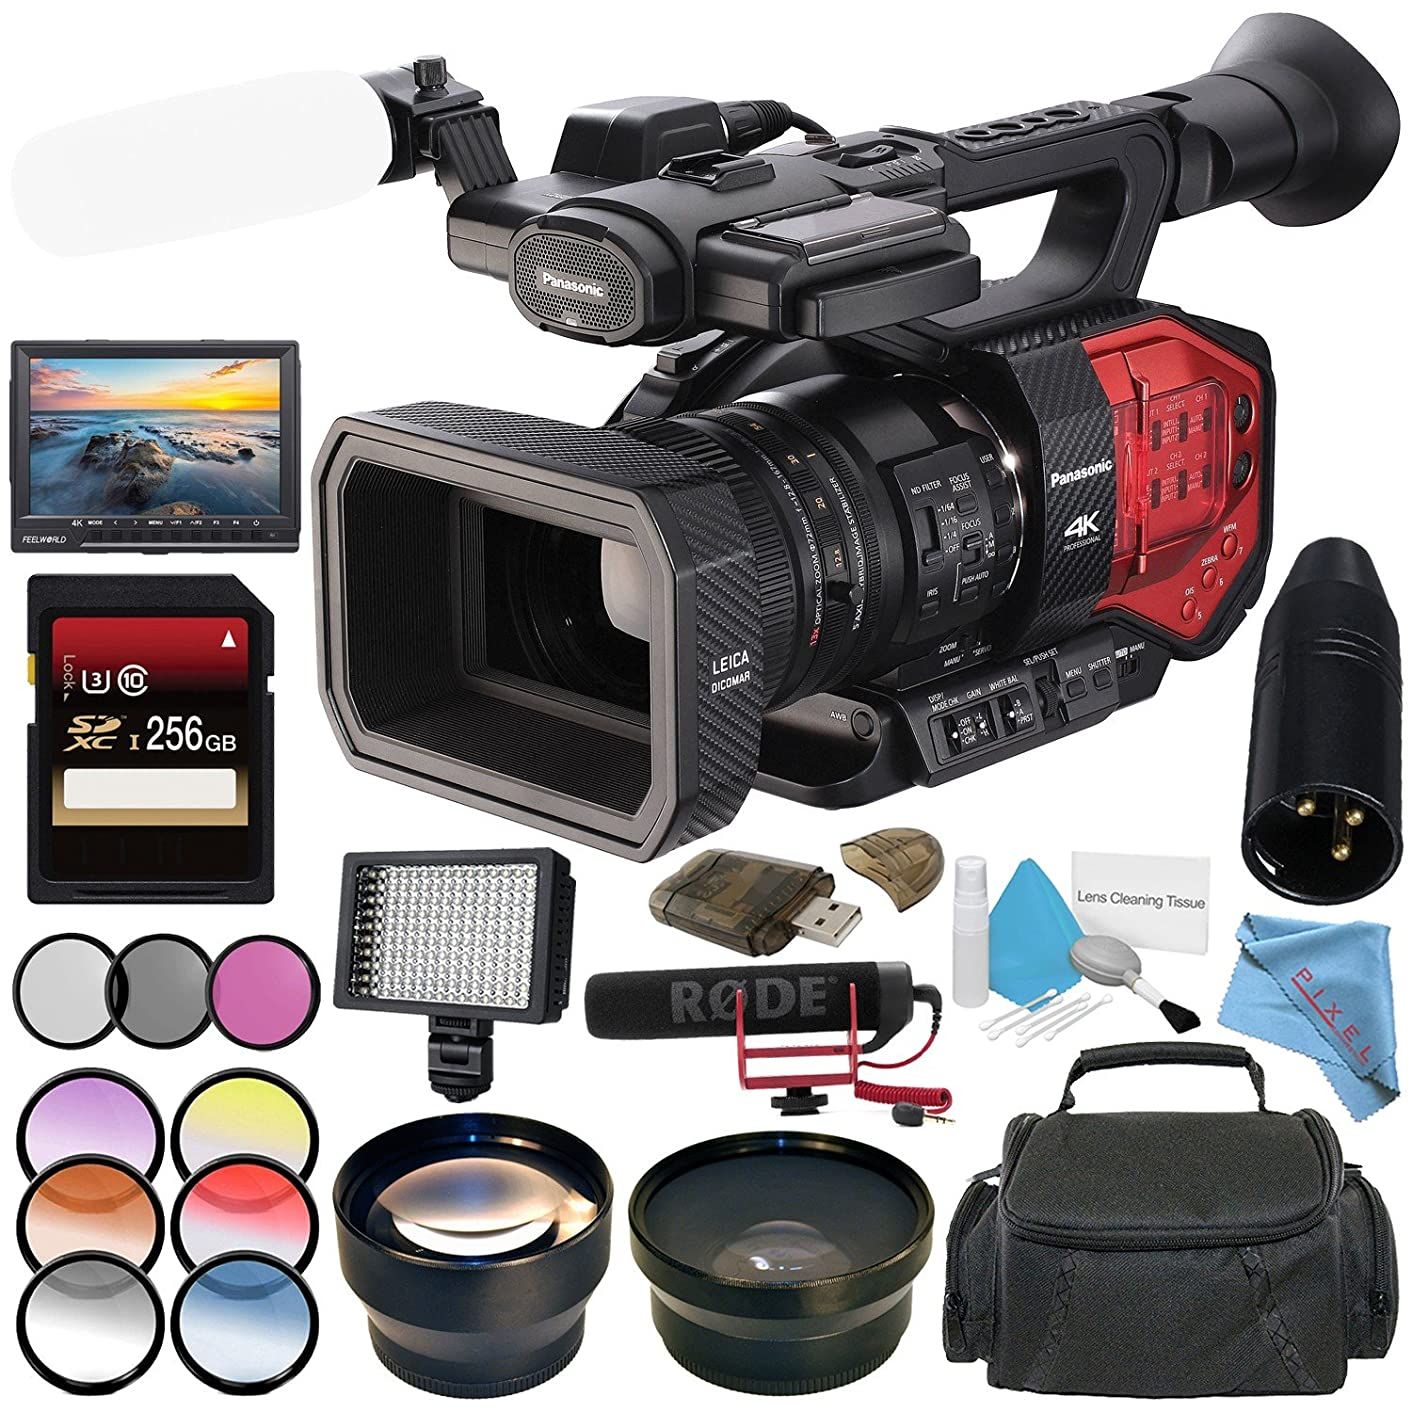 Panasonic AG-DVX200 4K Camcorder with Four Thirds Sensor and Integrated Zoom Lens + 256GB SDXC Card + 72mm 3 Piece Filter Kit + Rode VideoMic GO + 7